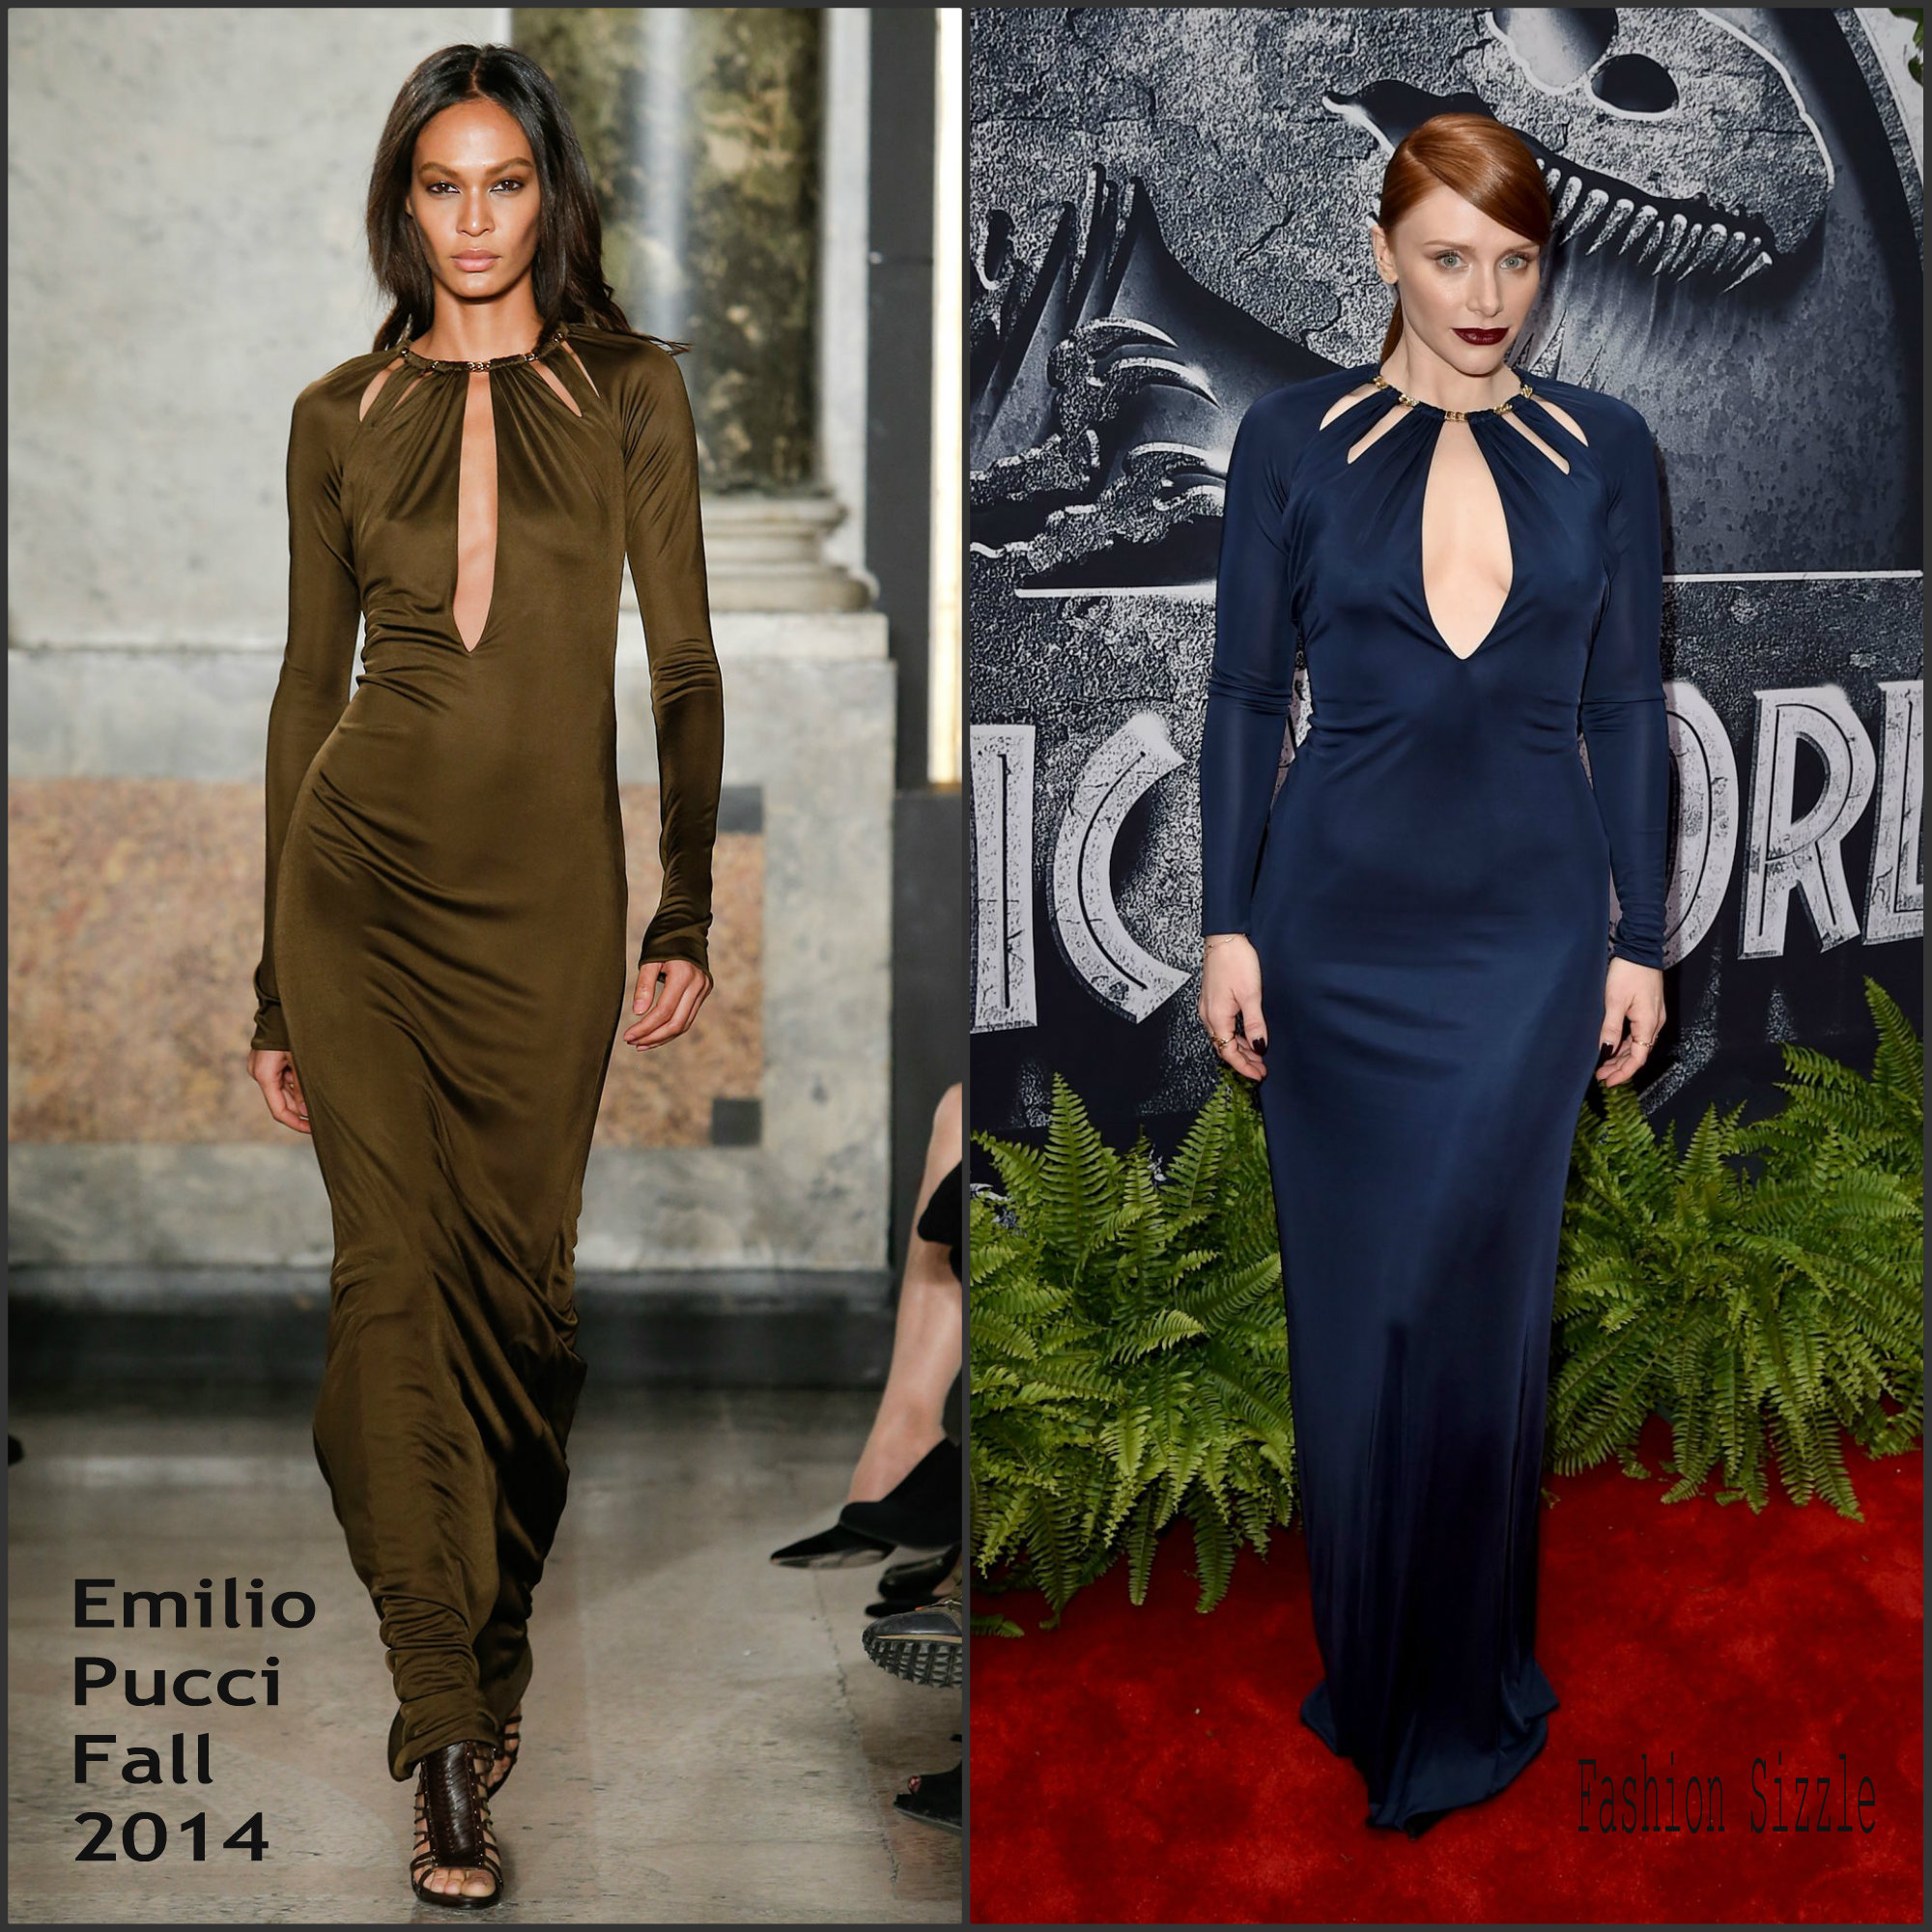 bryce-dallas-in-emilio-pucci-at-the-jurassic-world-premiere-in-hollywood